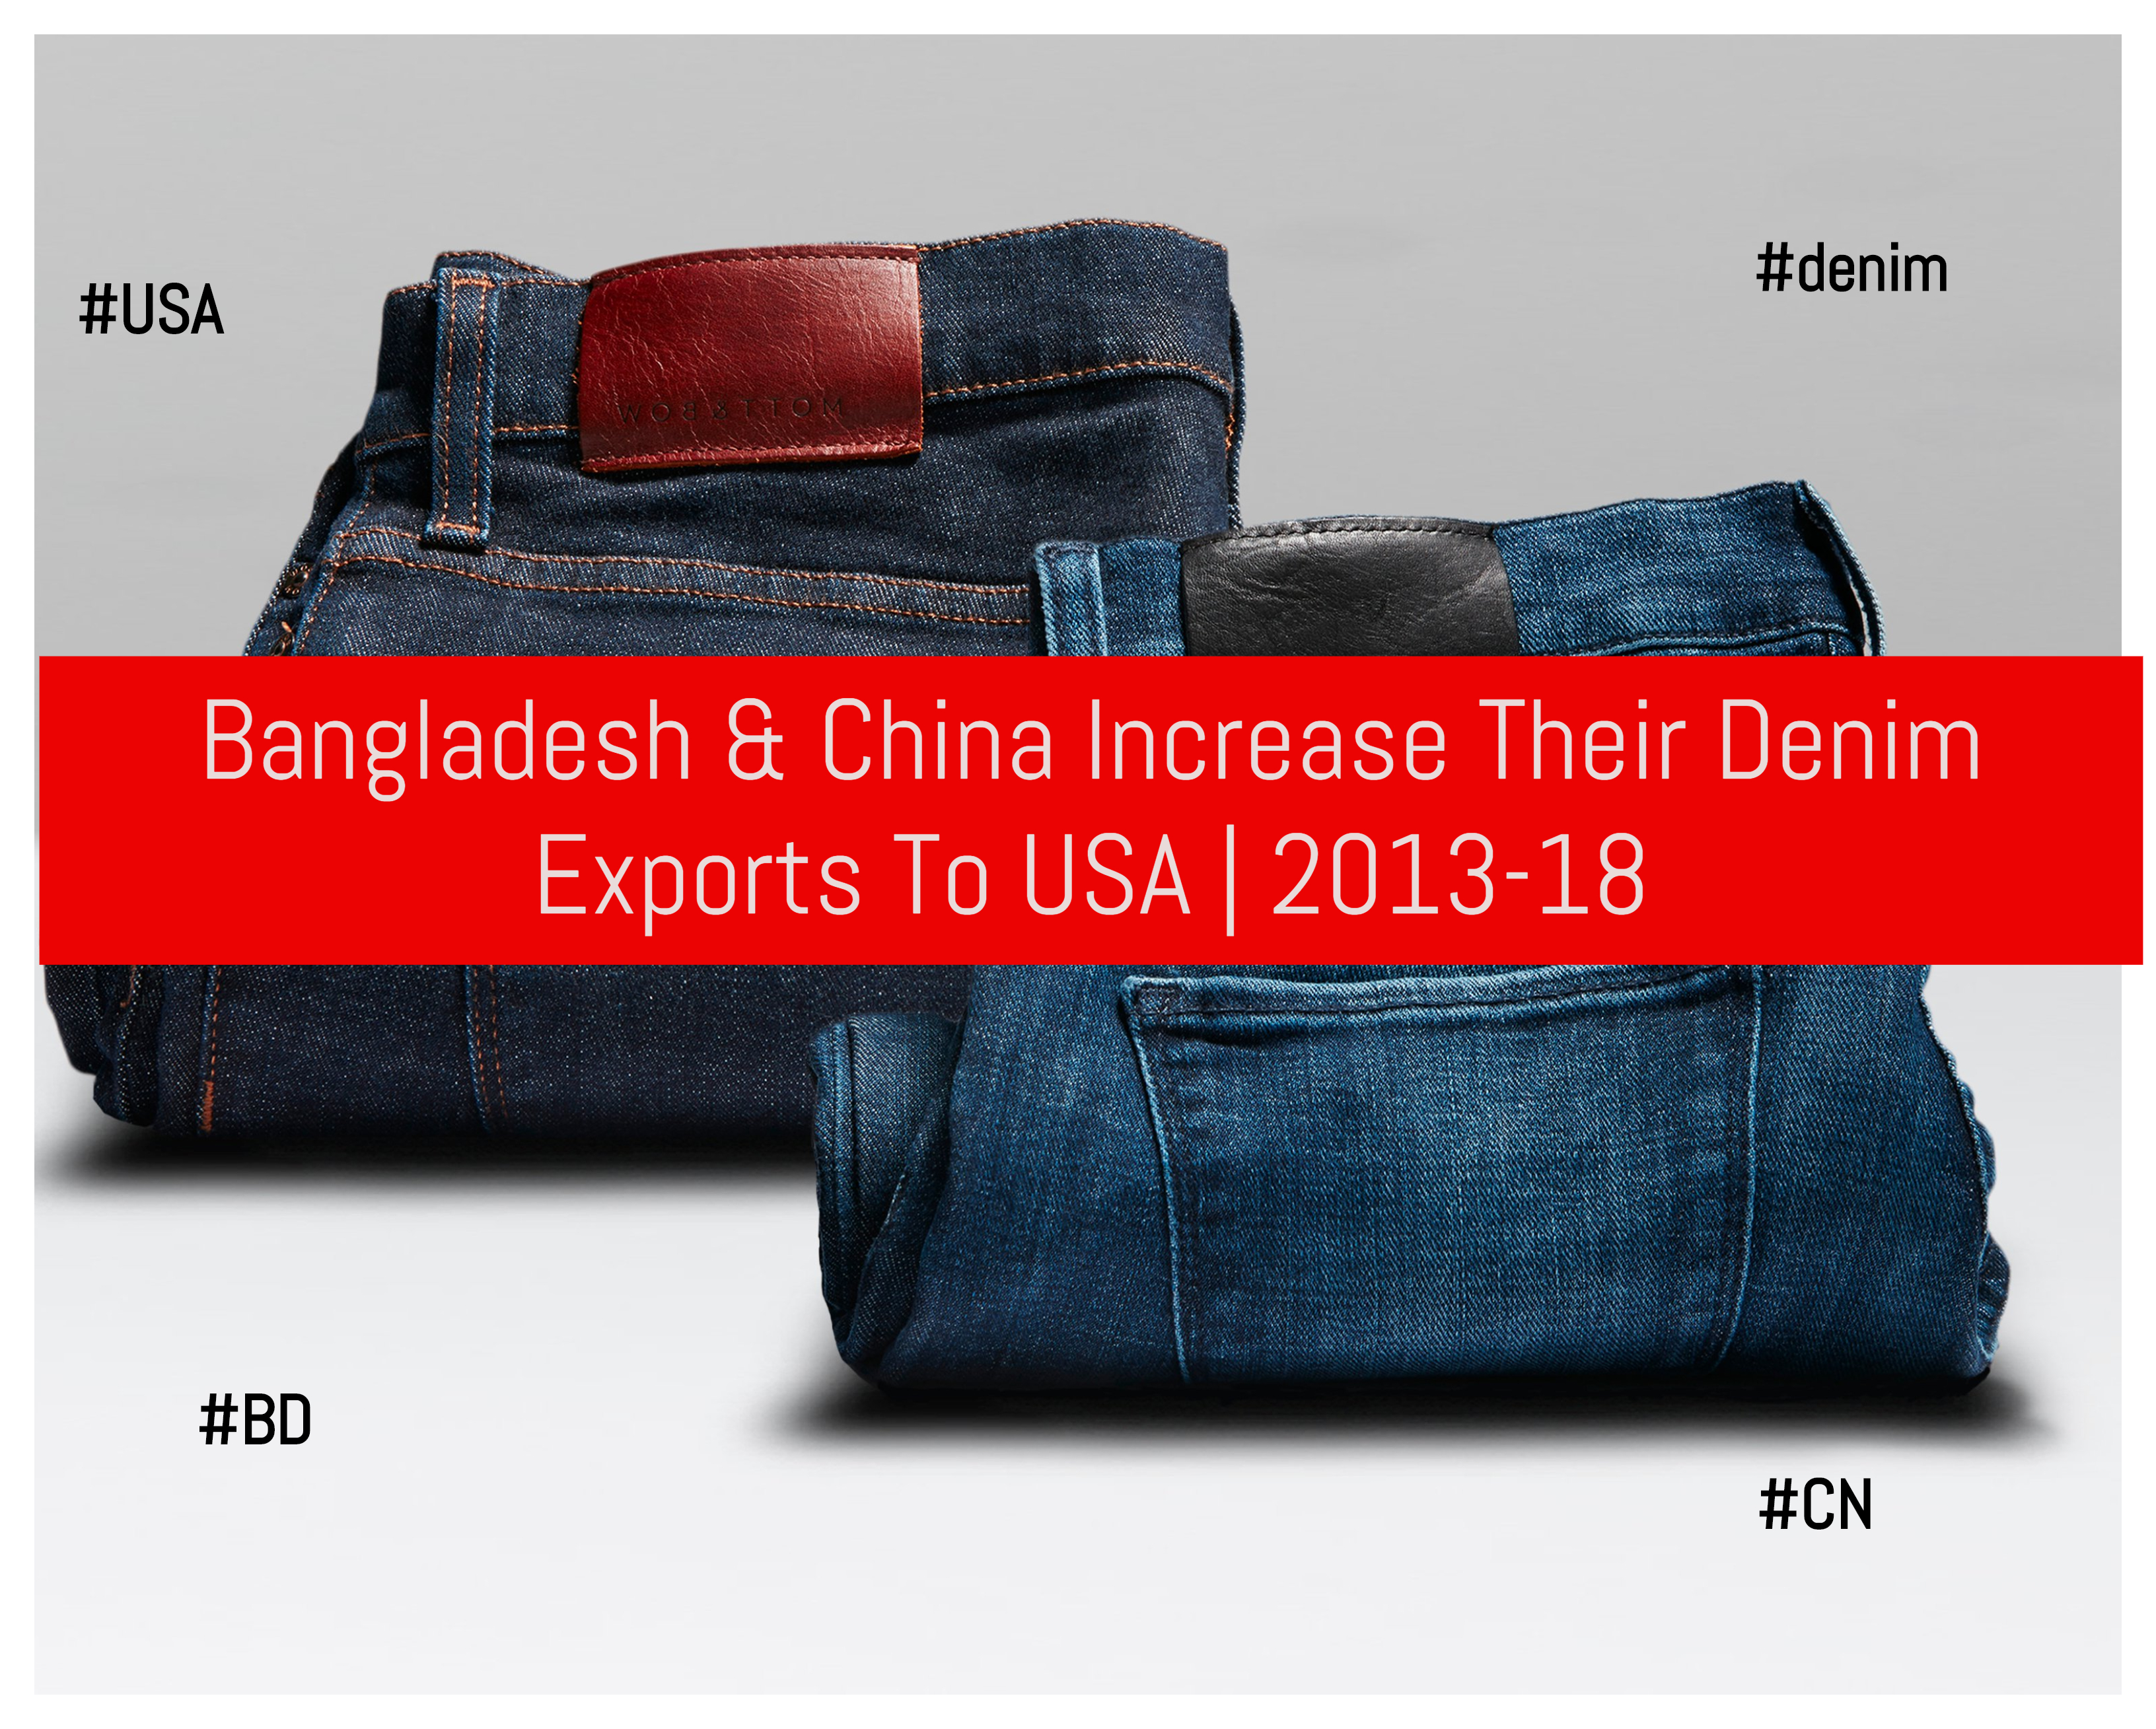 Bangladesh And China Increase Their Denim Exports To USA | 2013-18